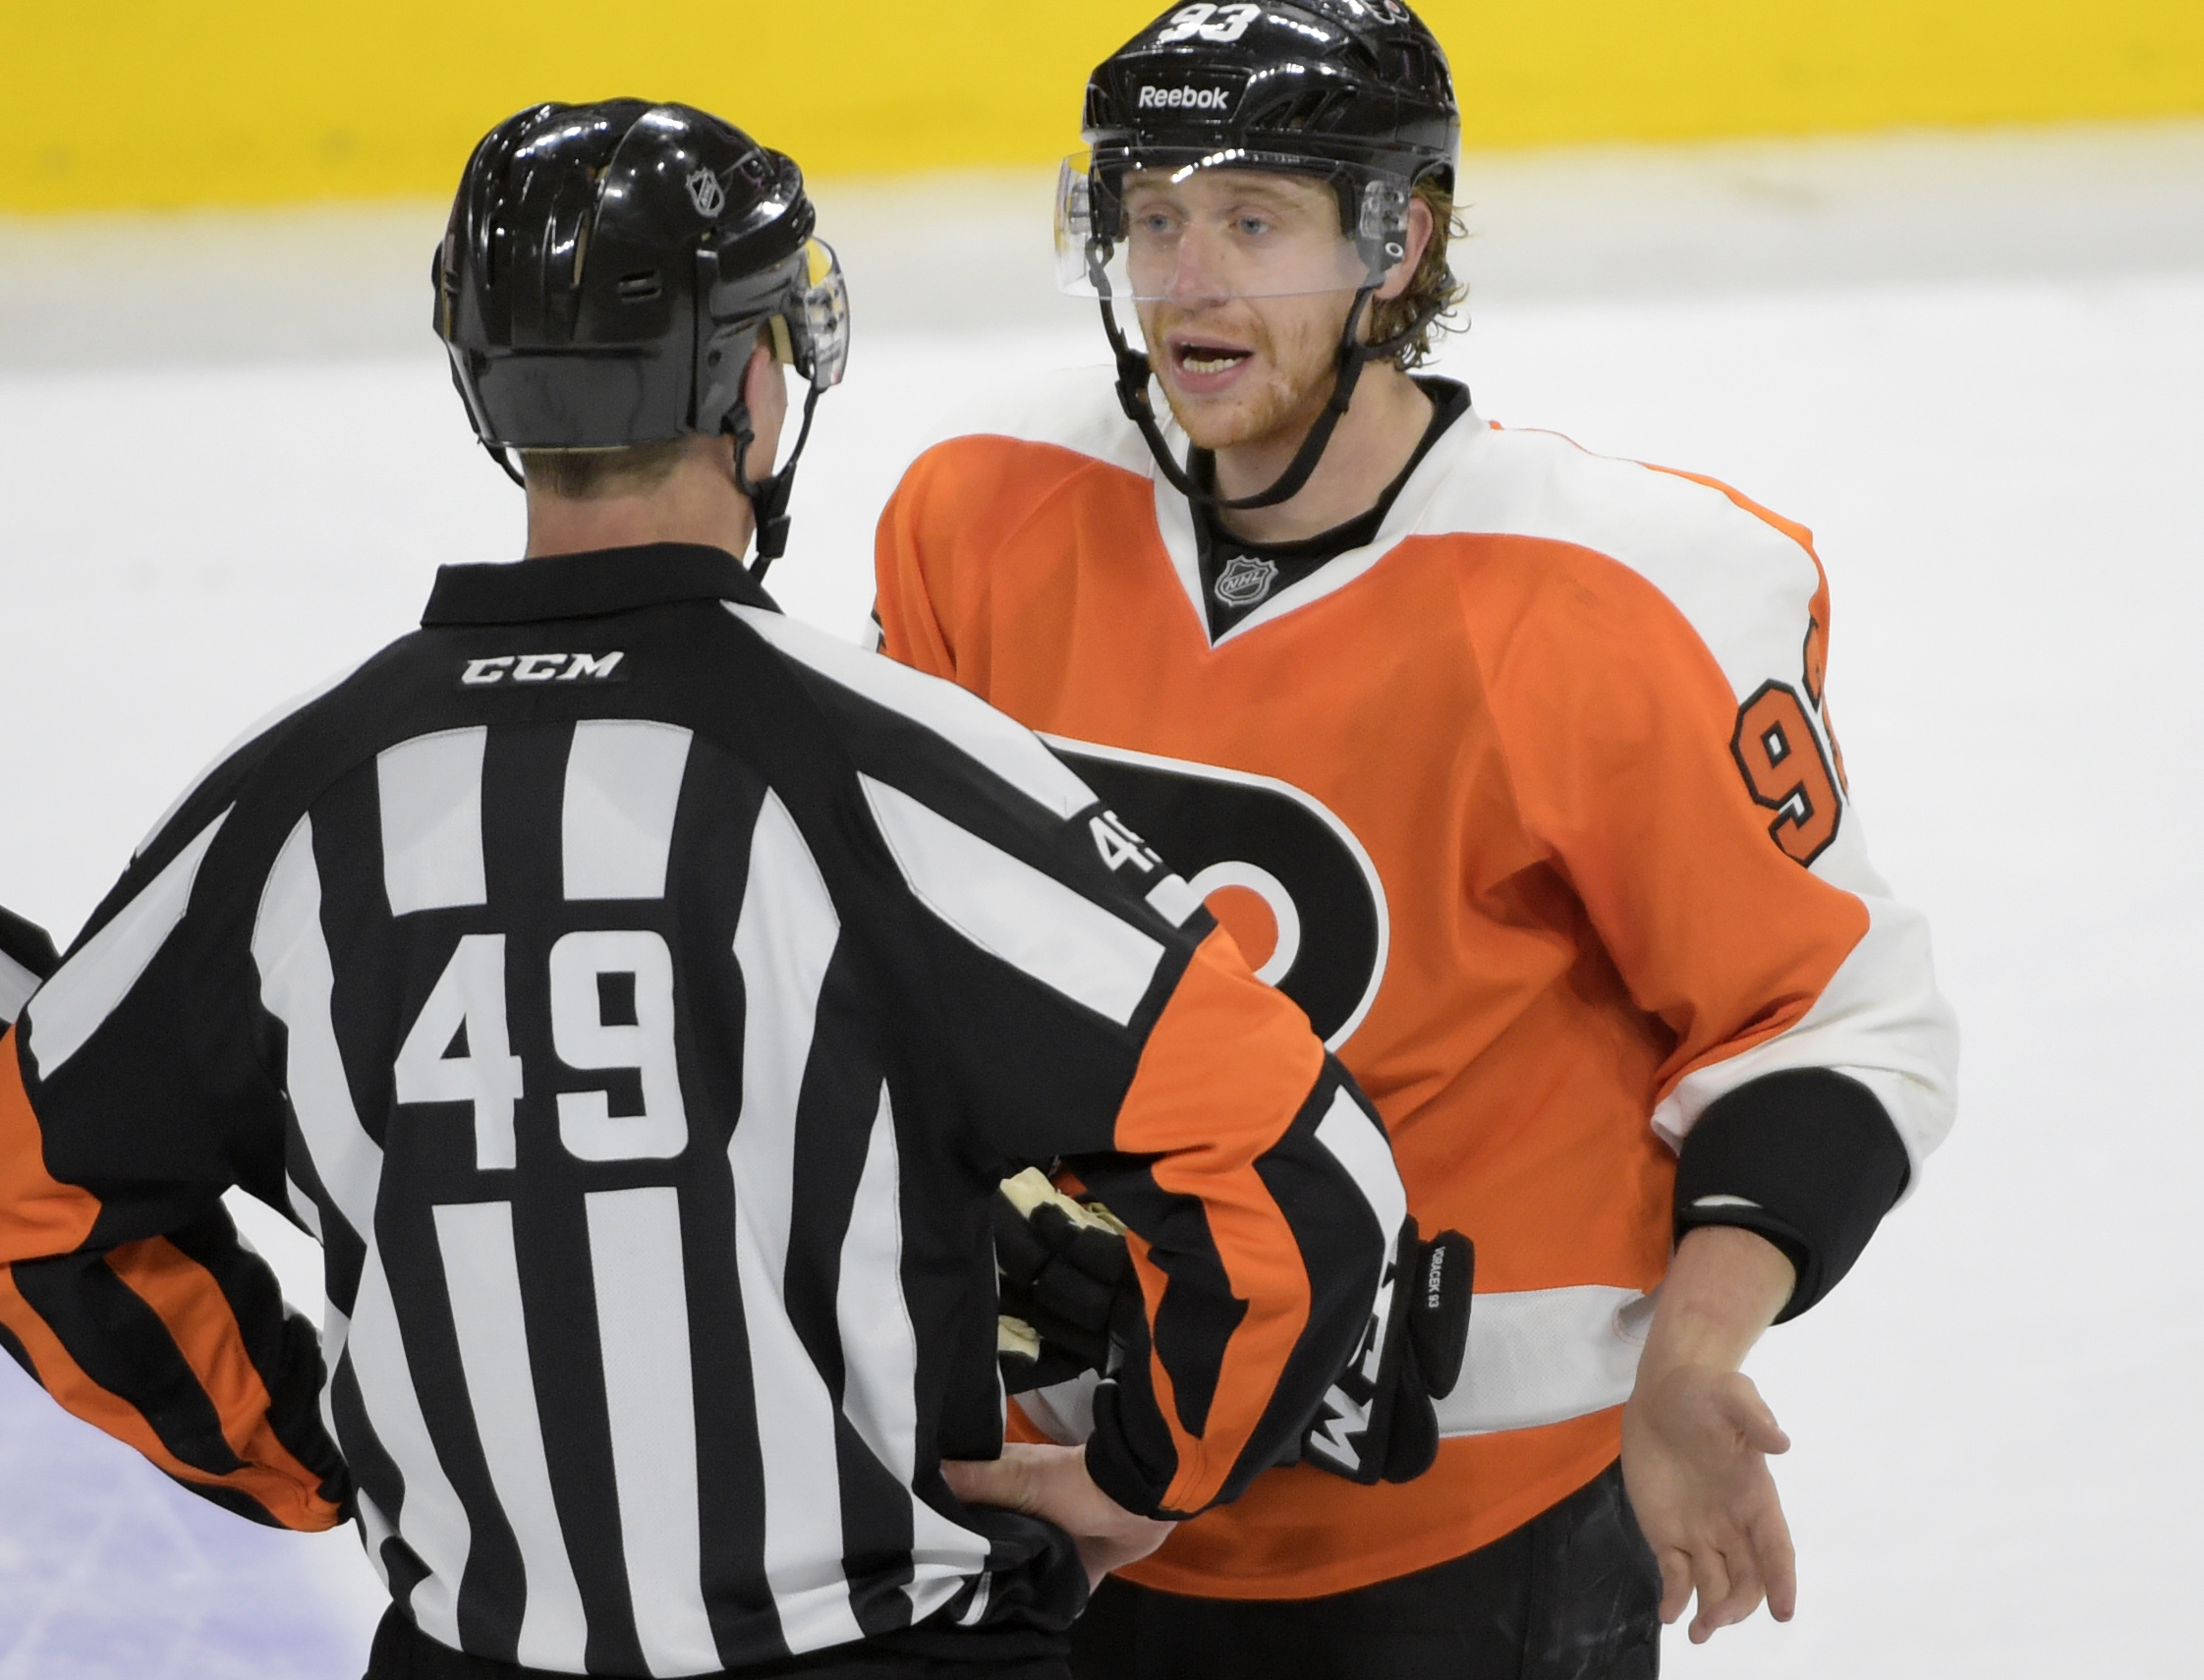 Unlike in this photo, Voracek actually liked the referees' decisions in this play.